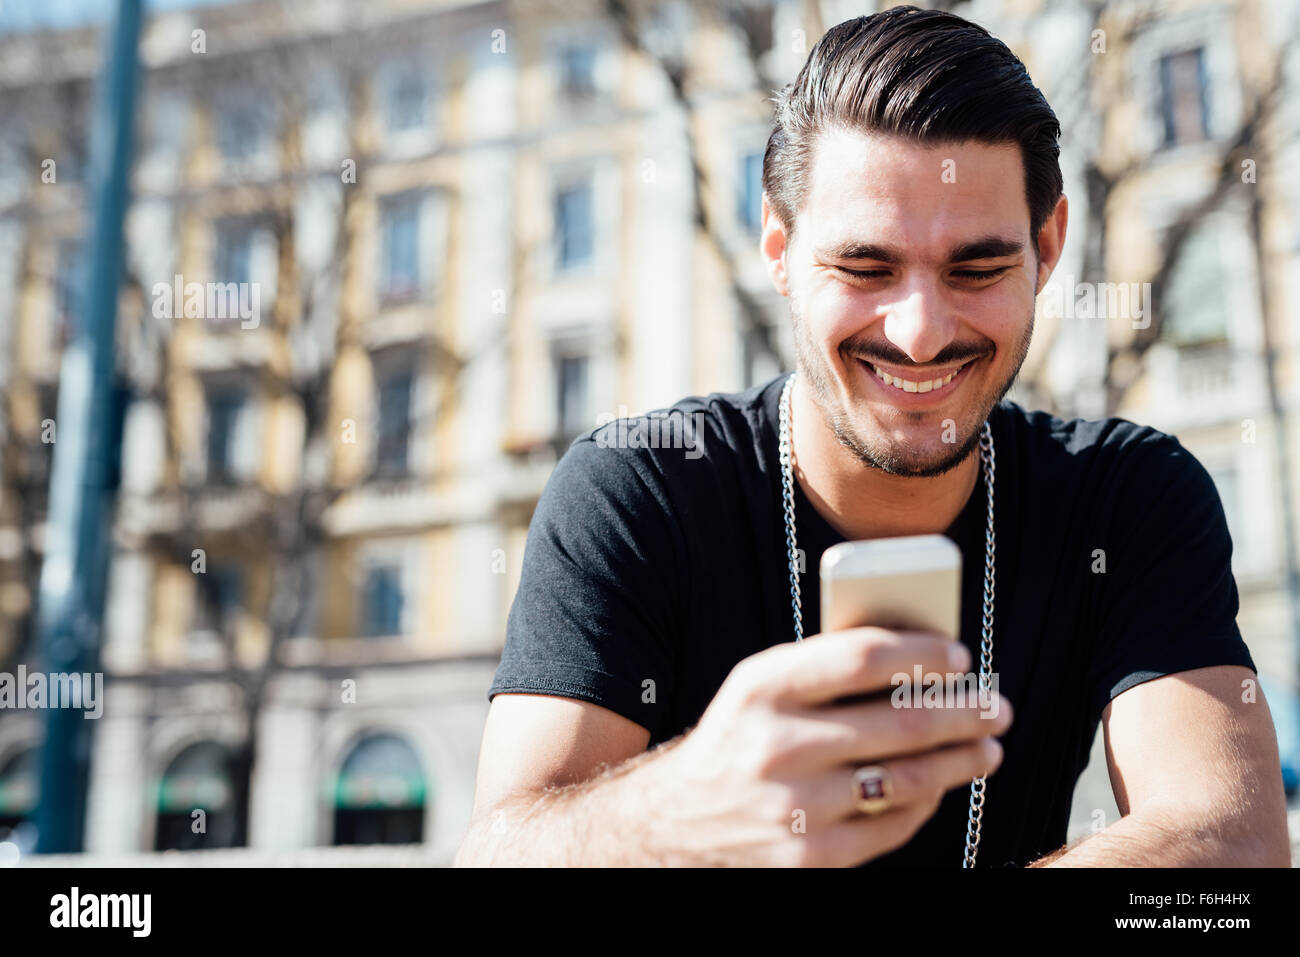 Portrait of a young handsome italian boy using a smartphone connected online, looking downward the screen, smiling - Stock Image